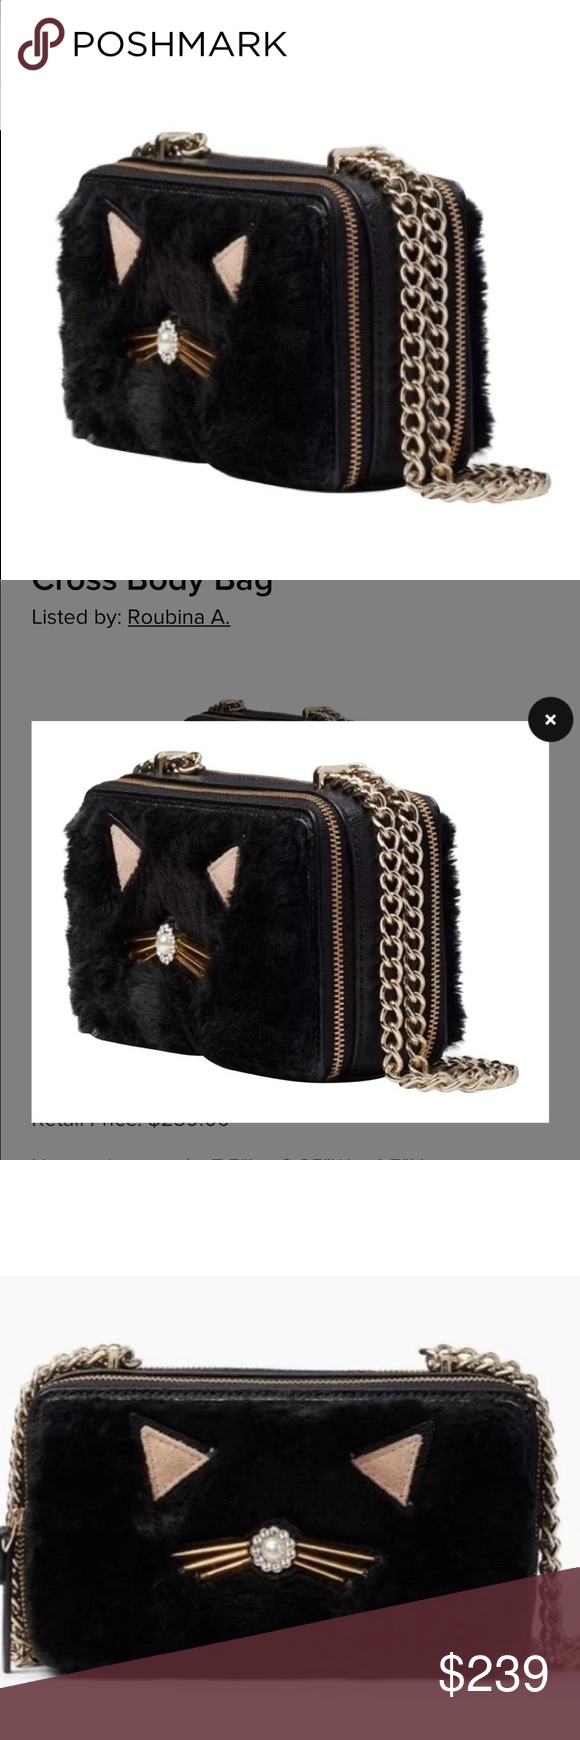 """Kate Spade Black Fur Cat Crossbody authentic Bag Kate Spade Brighton Lane Authentic Black Fur Cat Crossbody Bag. Adorable faux fur with leather sides and bottom. Matching wallet also available in my closet. #0841 #0842  Approx size: 7.5""""W x 4.5""""H x 2.5""""D Drop length approx 23"""" for Crossbody Drop length approx 12.5"""" chain double  Double zipper opening 2 separate compartments Interior zipper pocket 7 interior card and money slip pockets Authentic Crossbody Kate Spade Brighton Lane Bag Marigold Fur"""